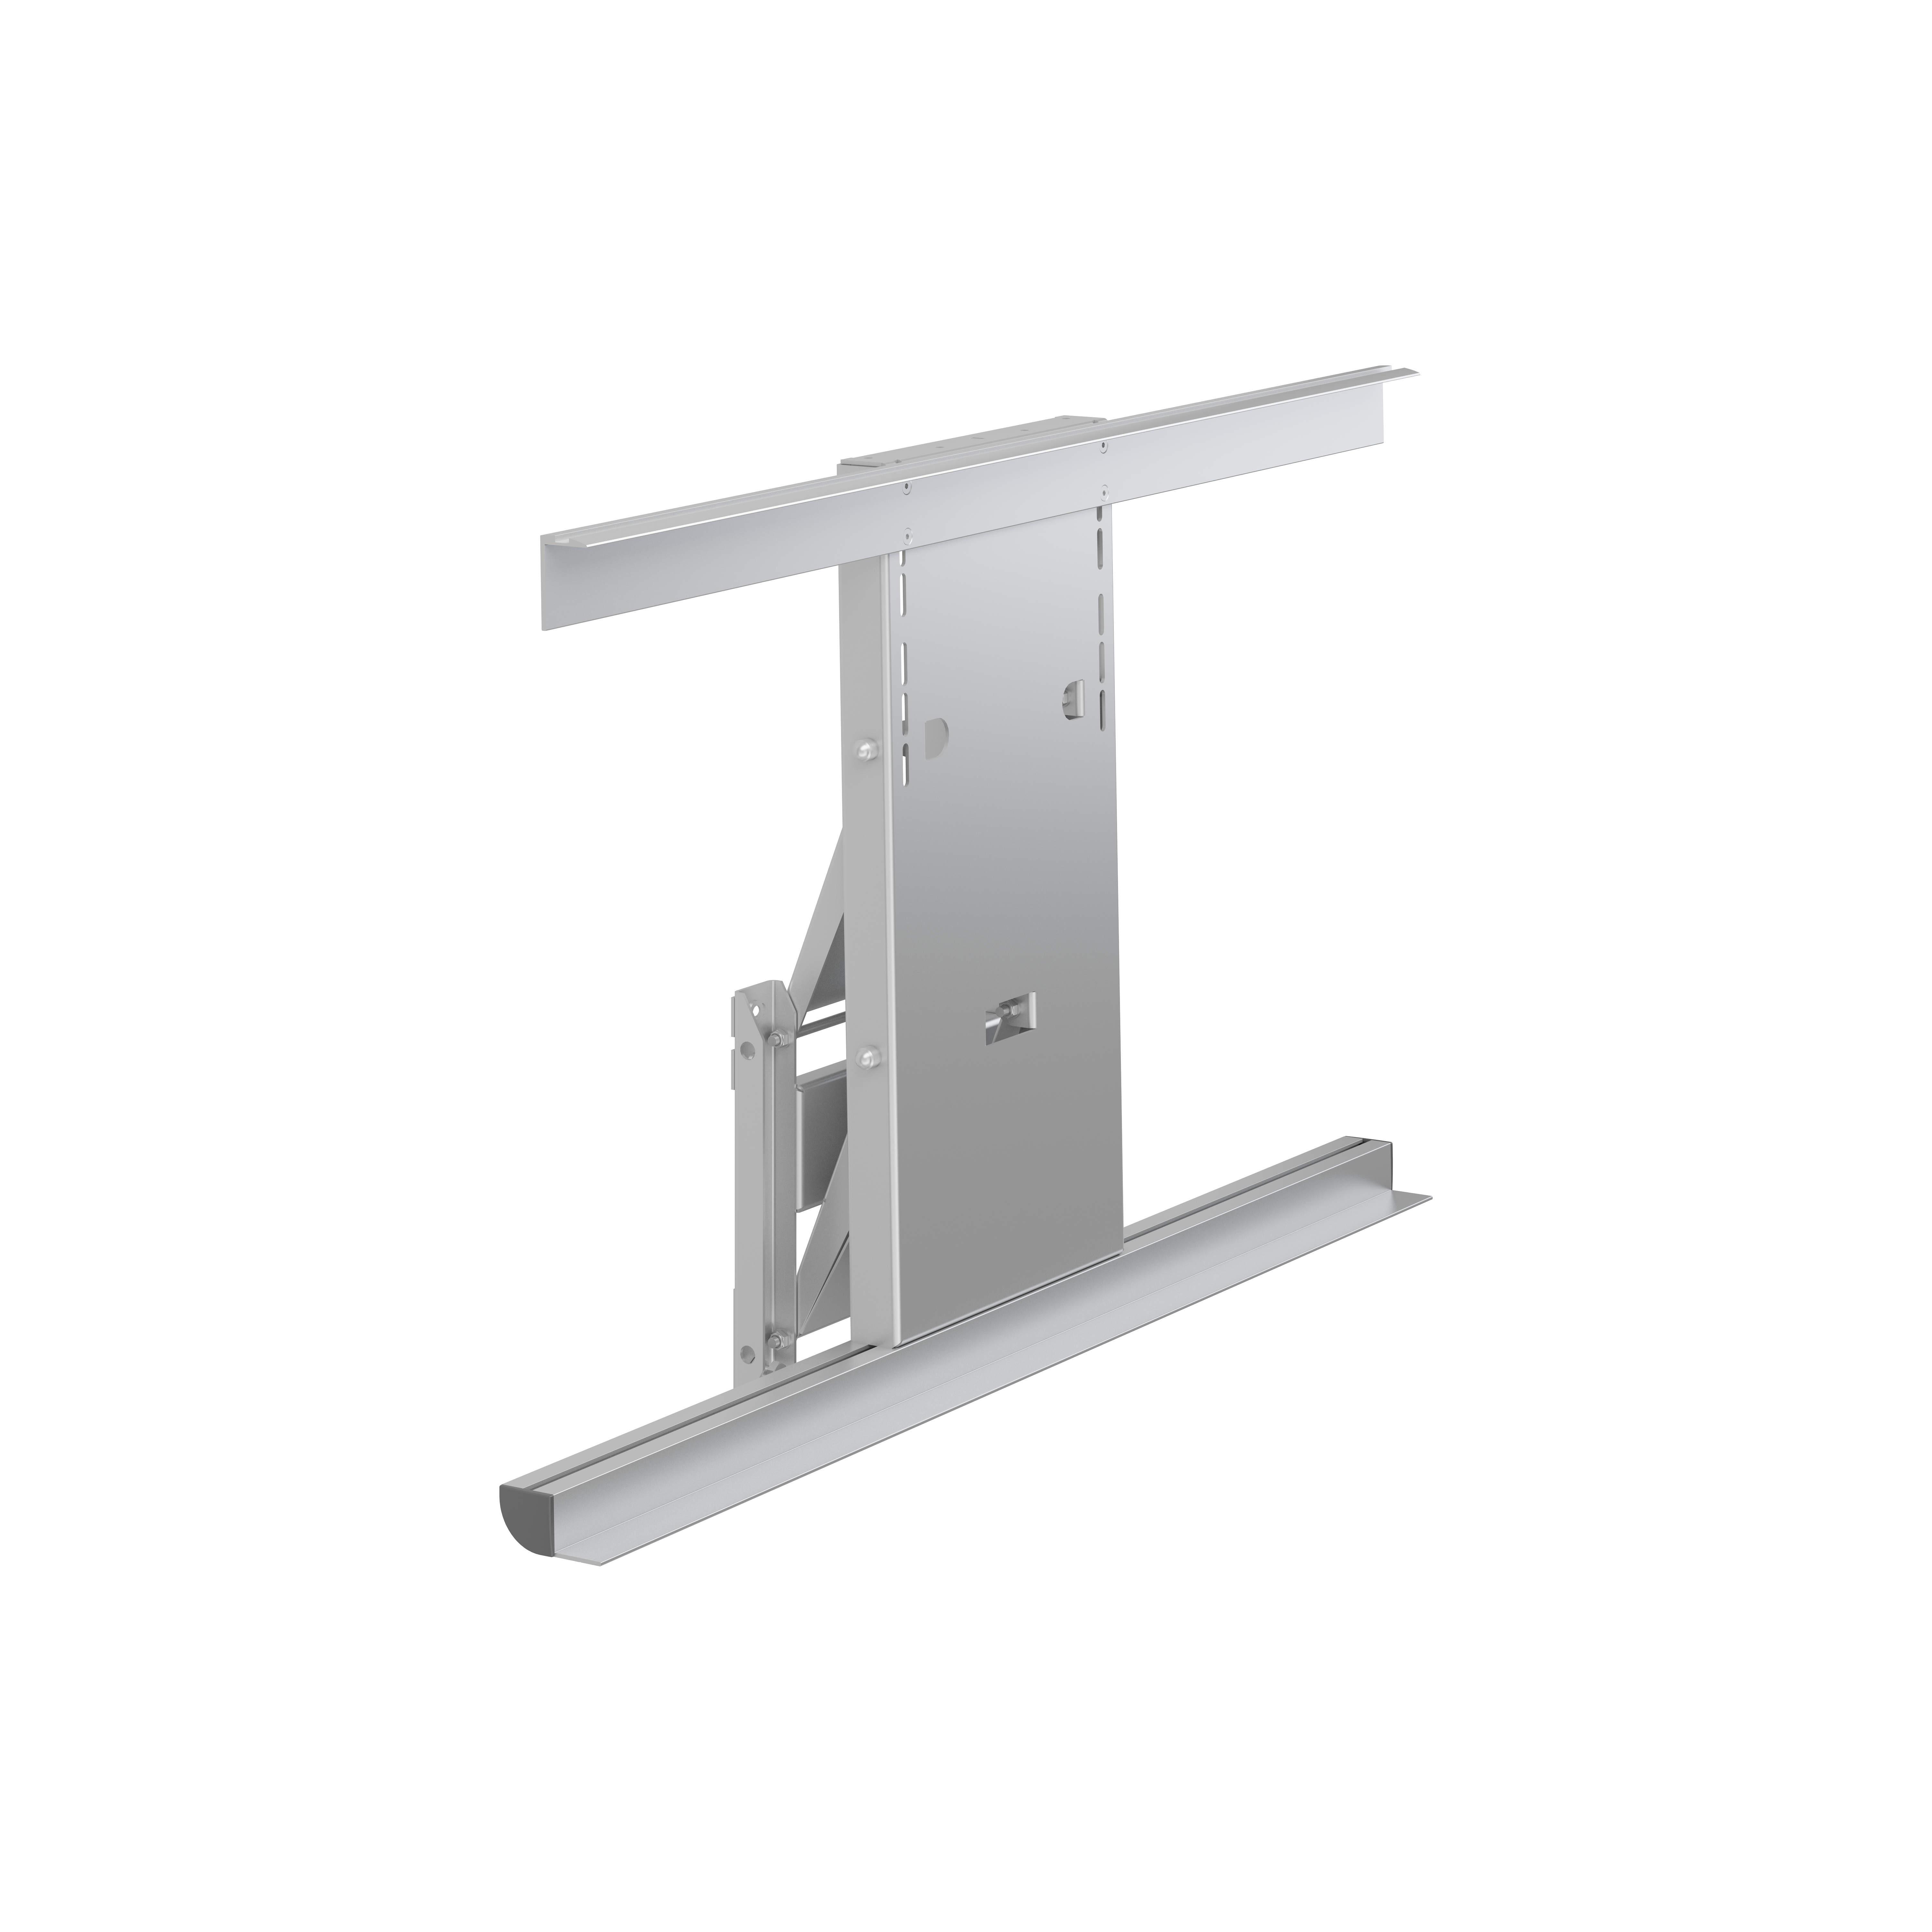 Lift for wall cupboard, electrically height adjustable